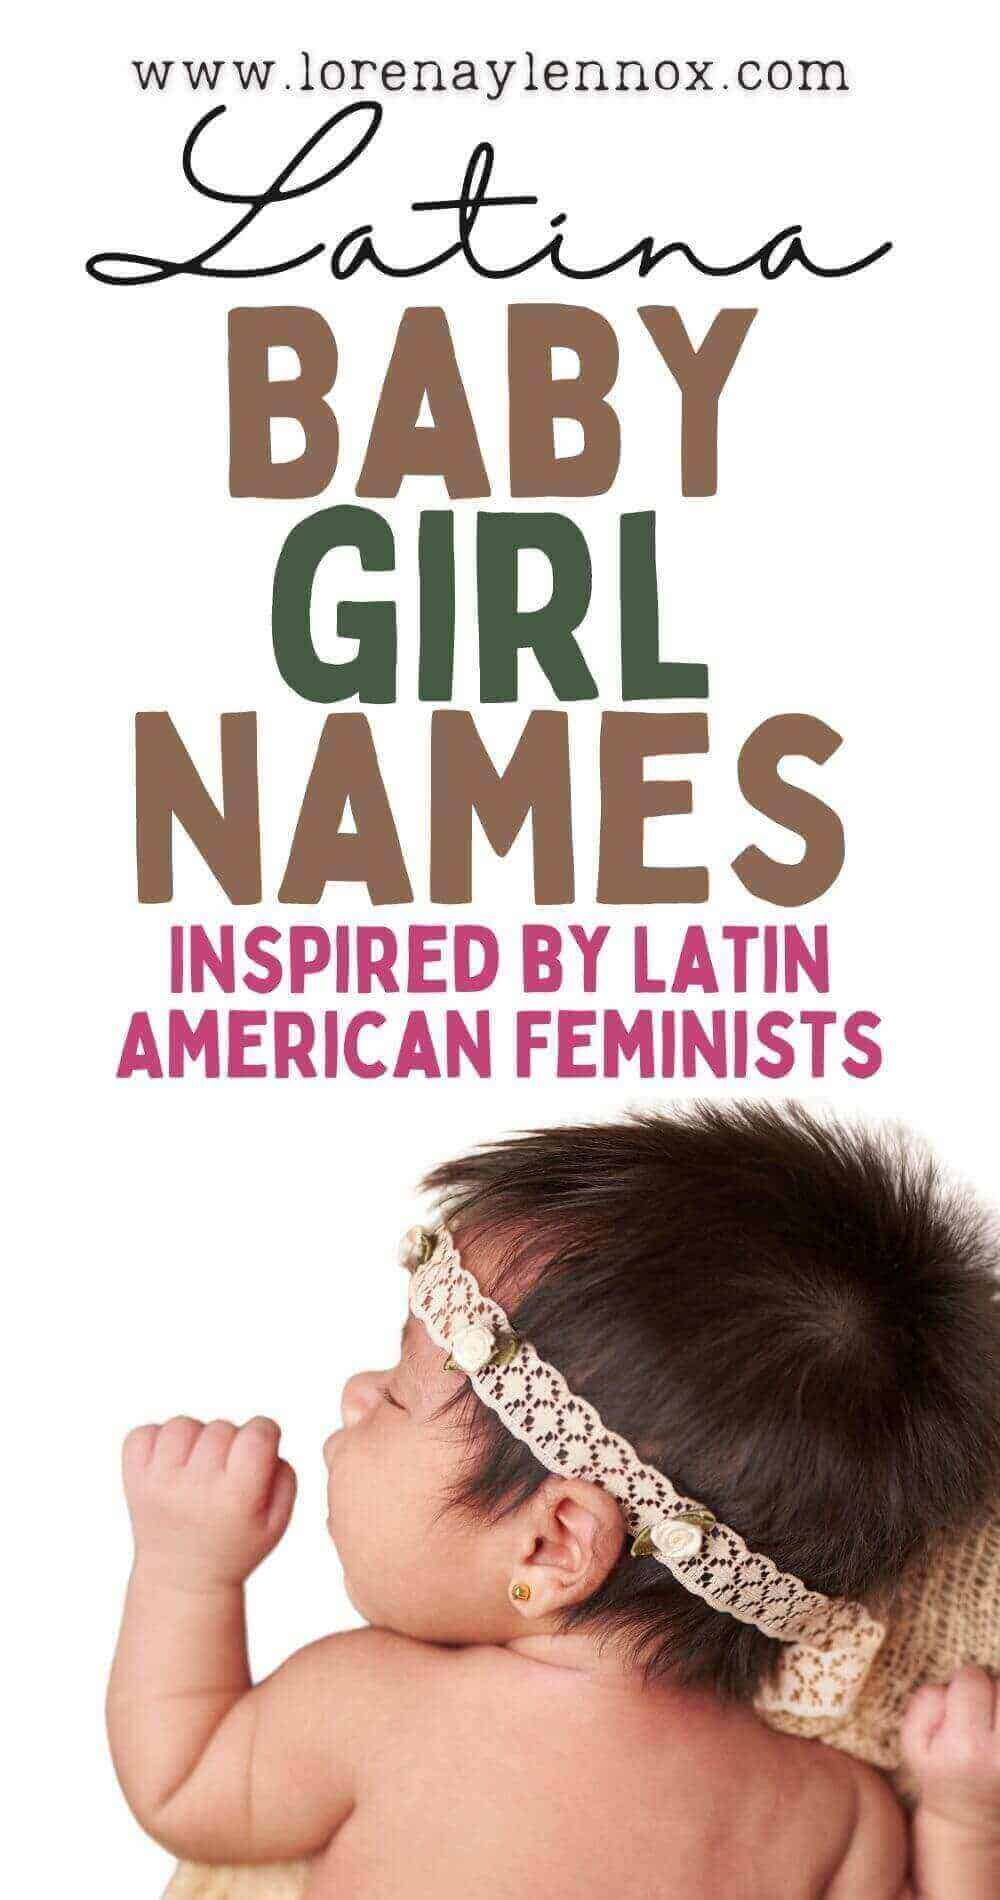 27 unique Latina baby girl names that are inspired by fierce historical women of Latin American history.